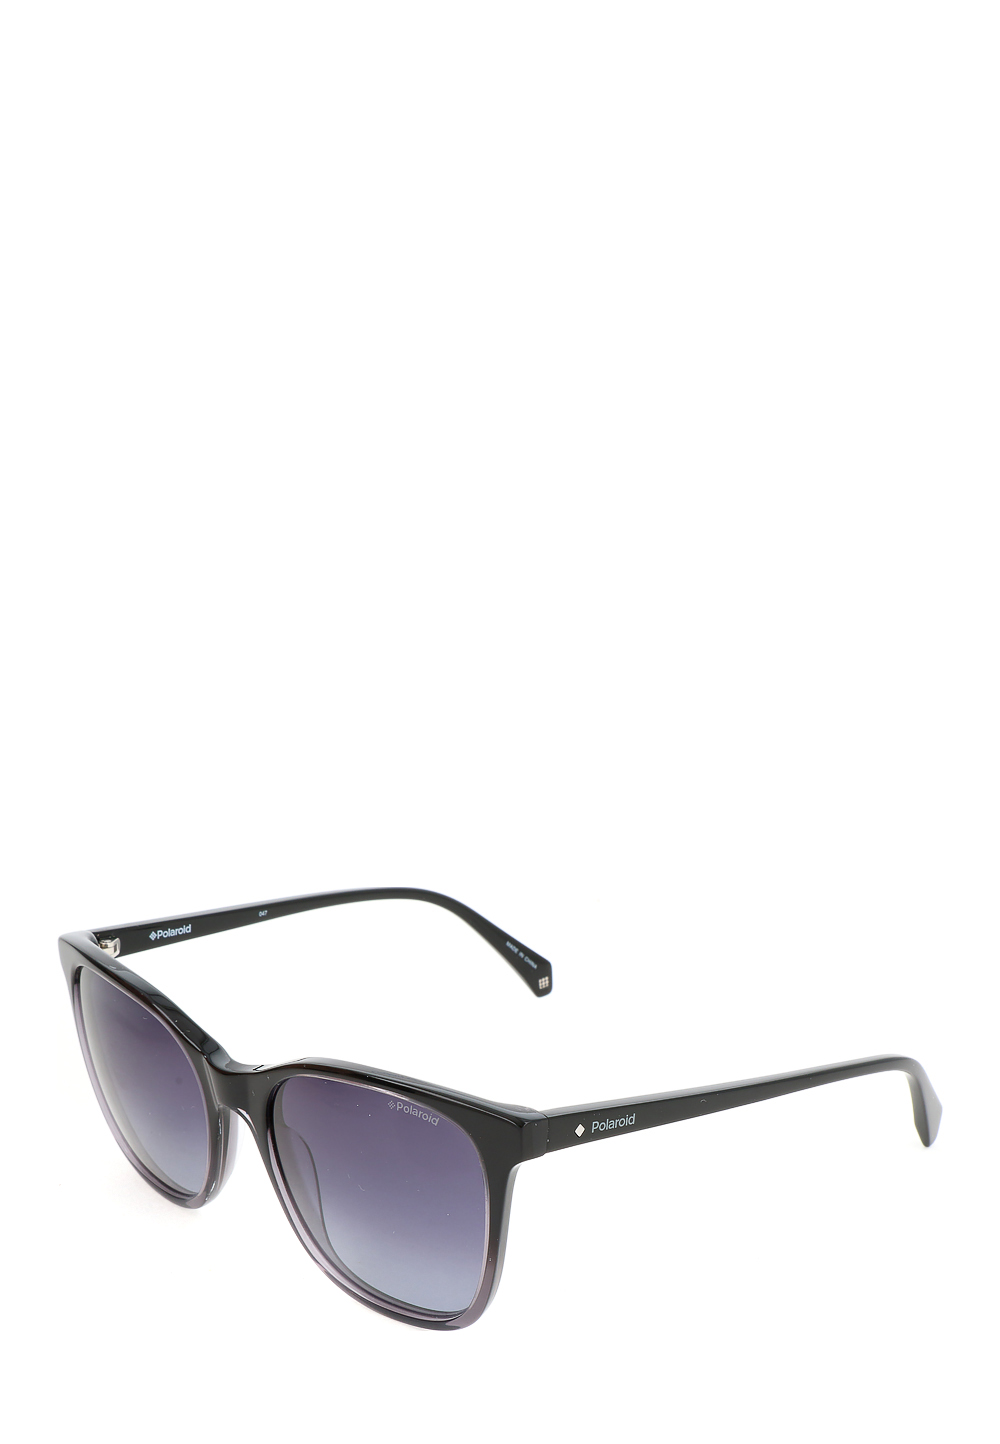 Sonnenbrille Pld4059/U/S, polarized, Uv400, black grau